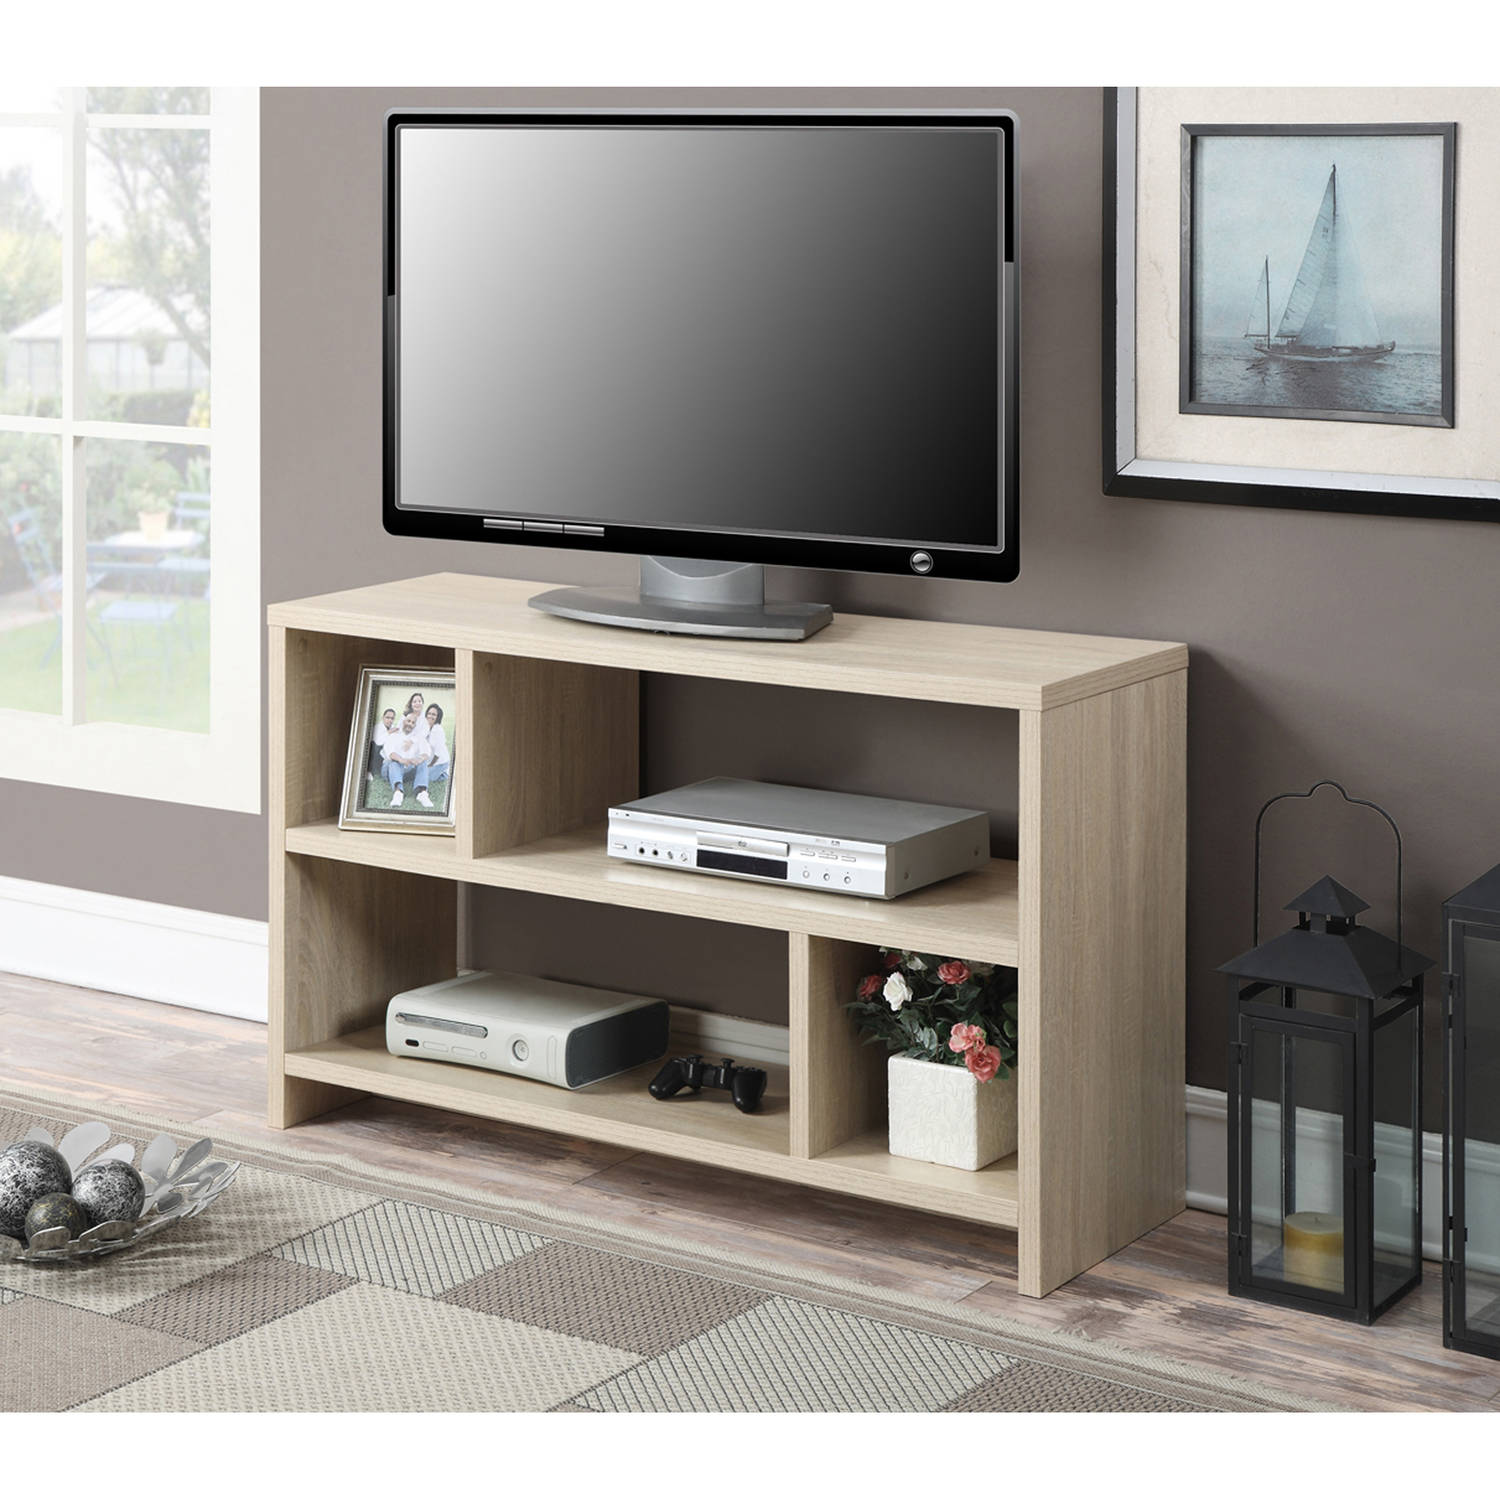 "Convenience Concepts Designs2Go Northfield TV Stand Console for TVs up to 46"", Multiple Colors"